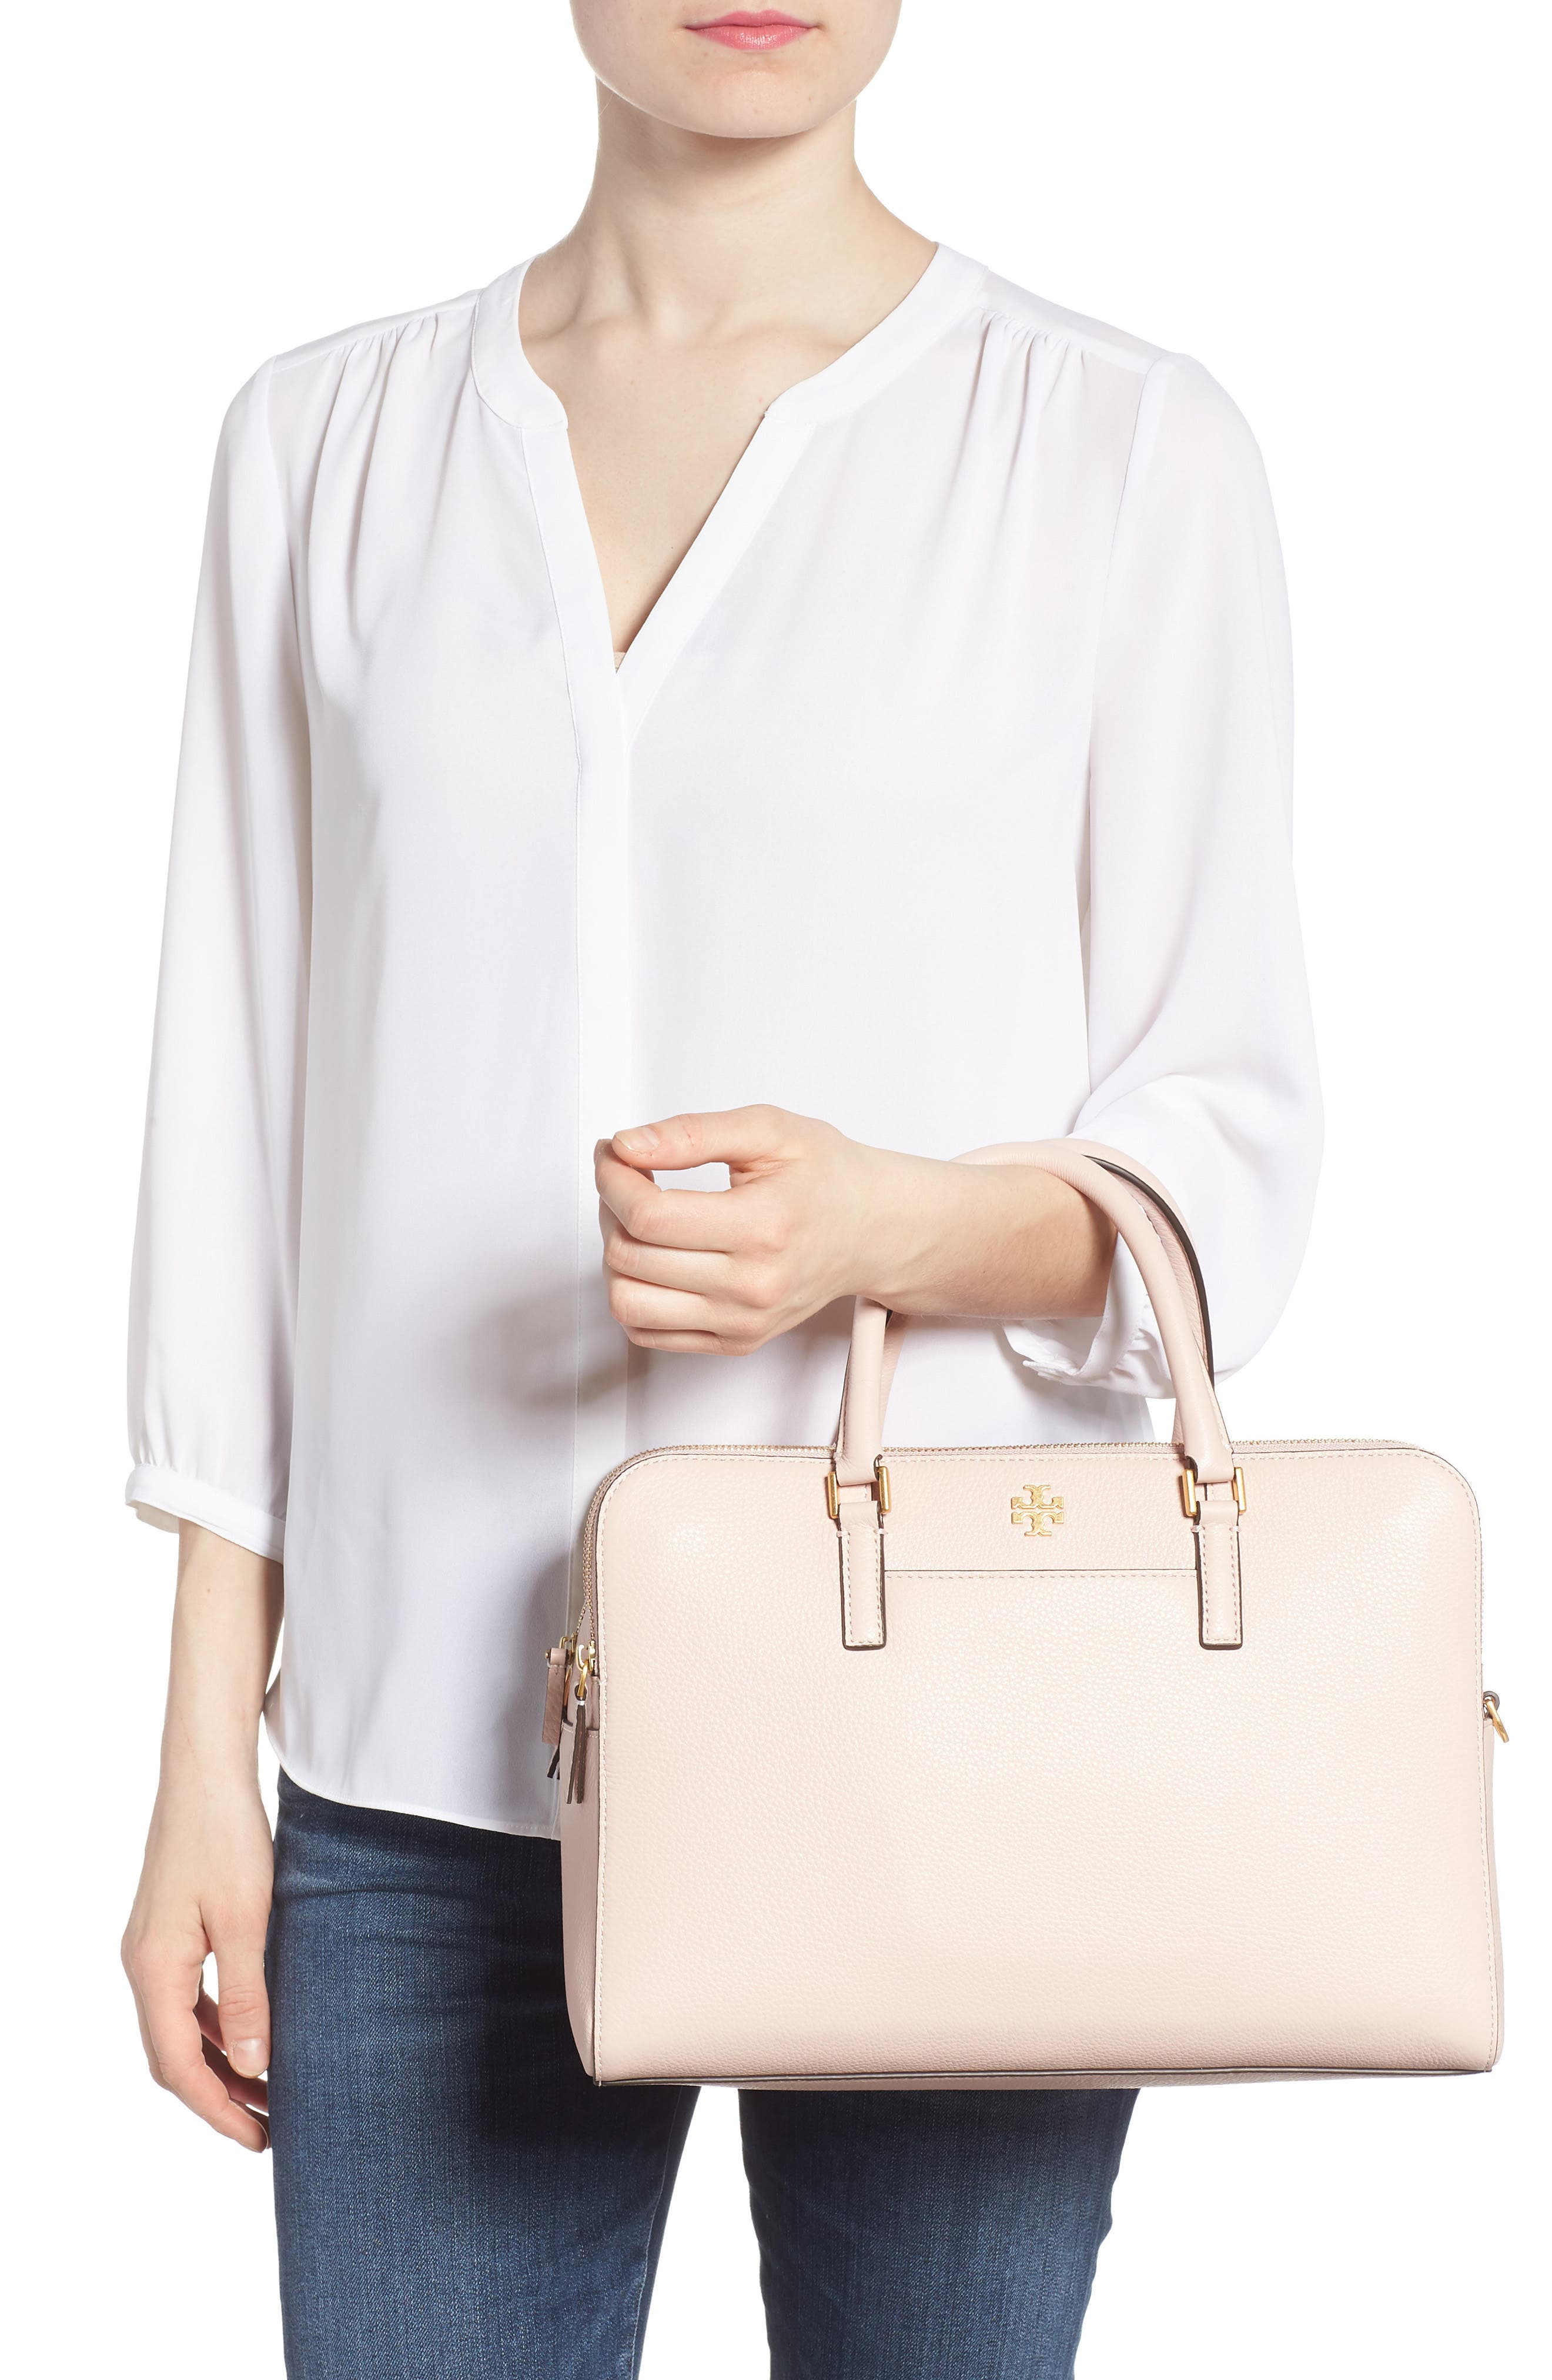 Georgia Double Zip Pebbled Leather Satchel,                             Alternate thumbnail 2, color,                             Shell Pink